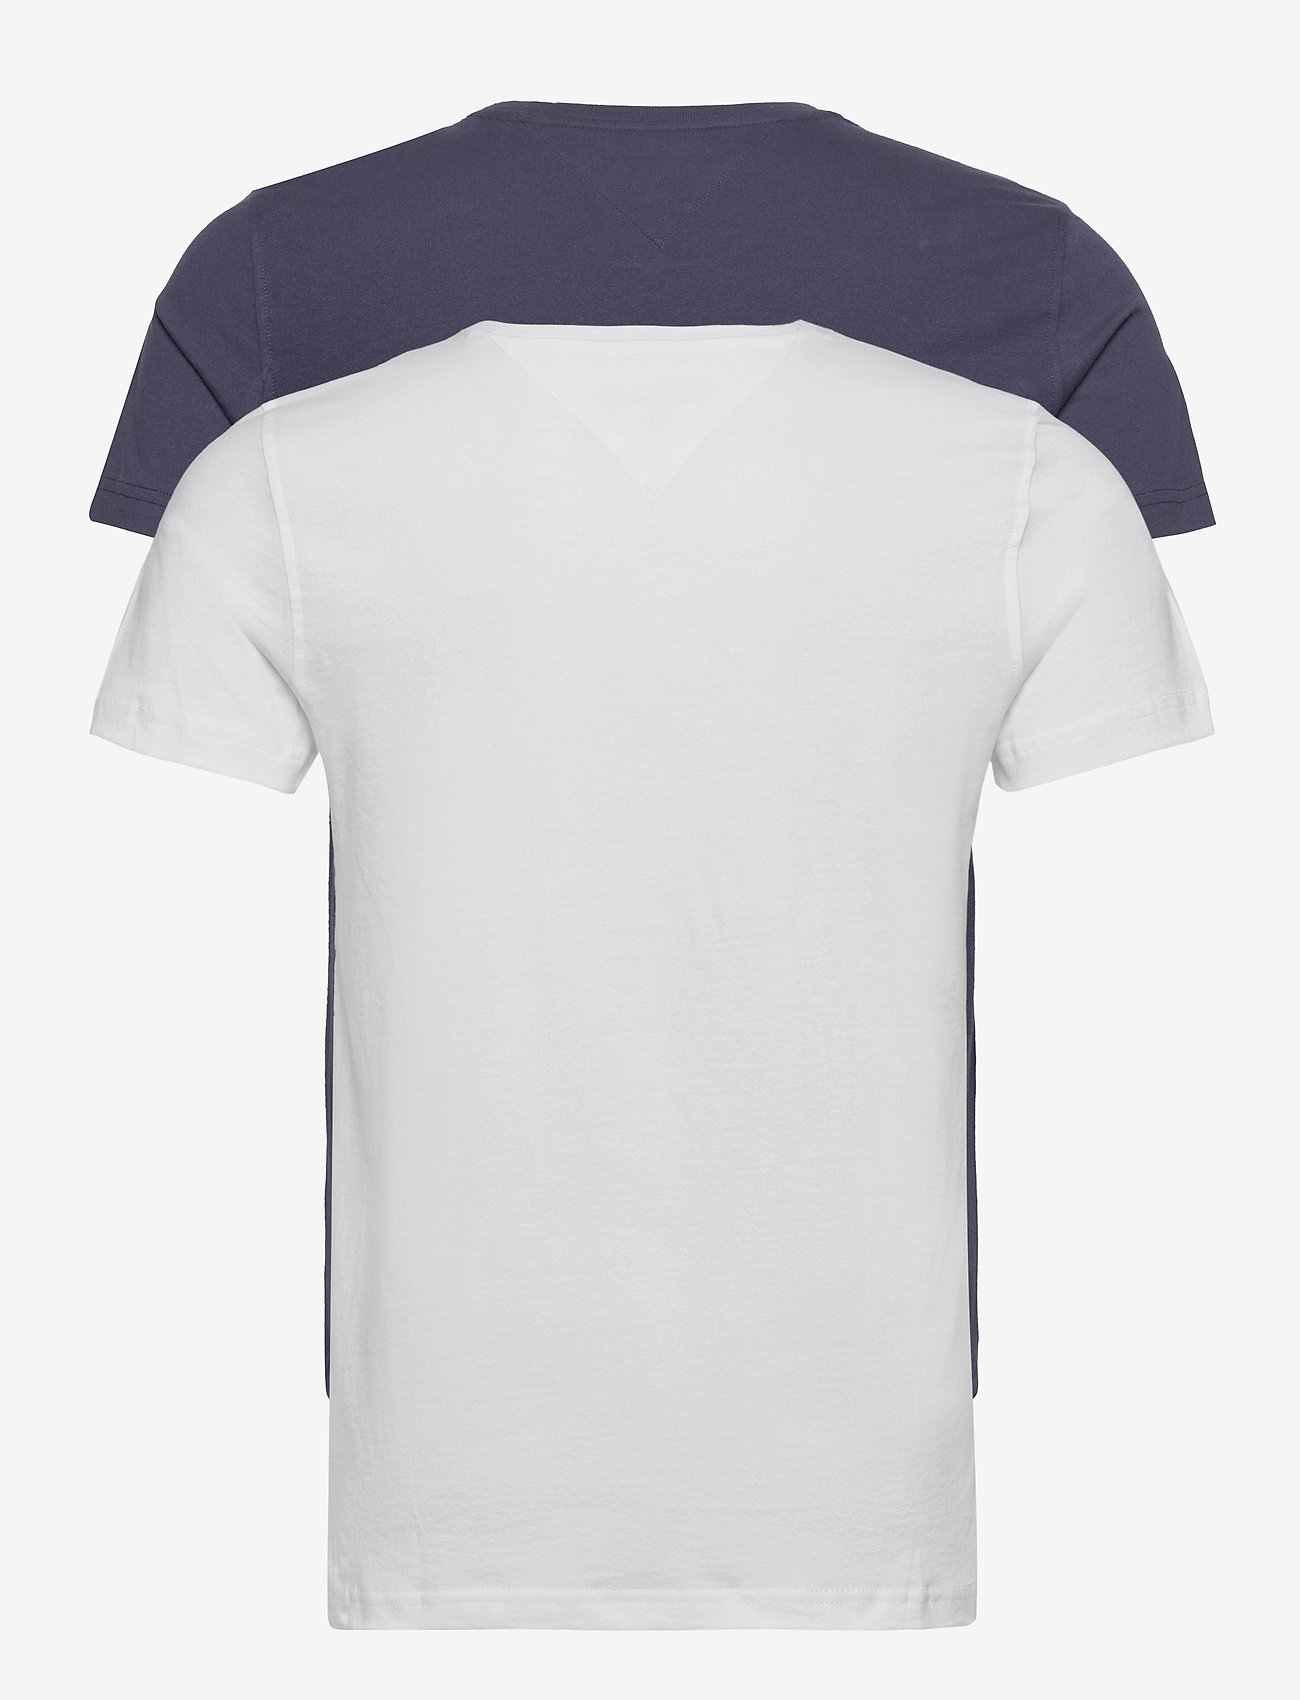 Tommy Jeans - TJM 2PACK CNECK TEES - basic t-shirts - white / navy - 1